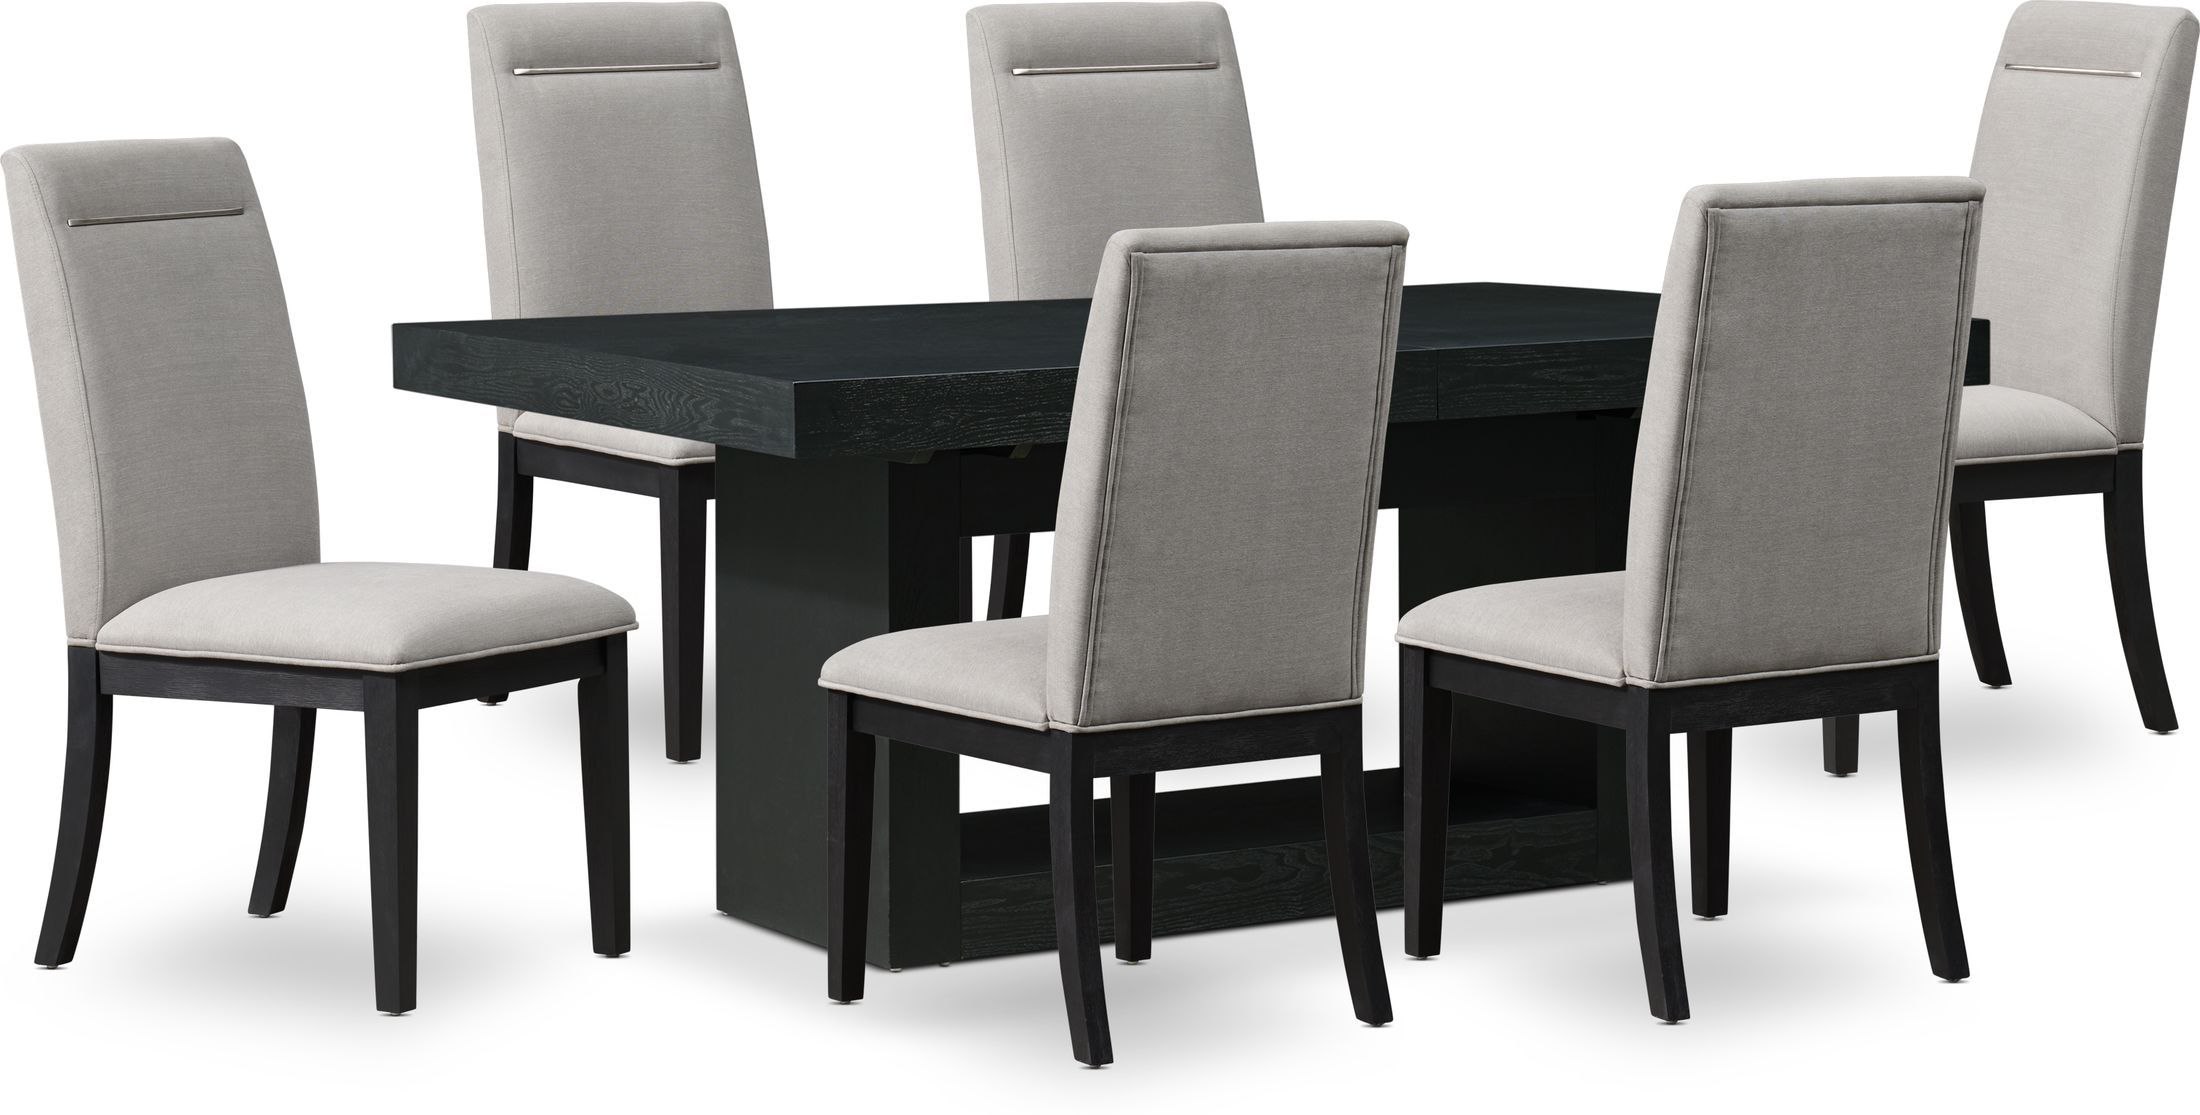 42++ Gray and black dining table set Best Seller